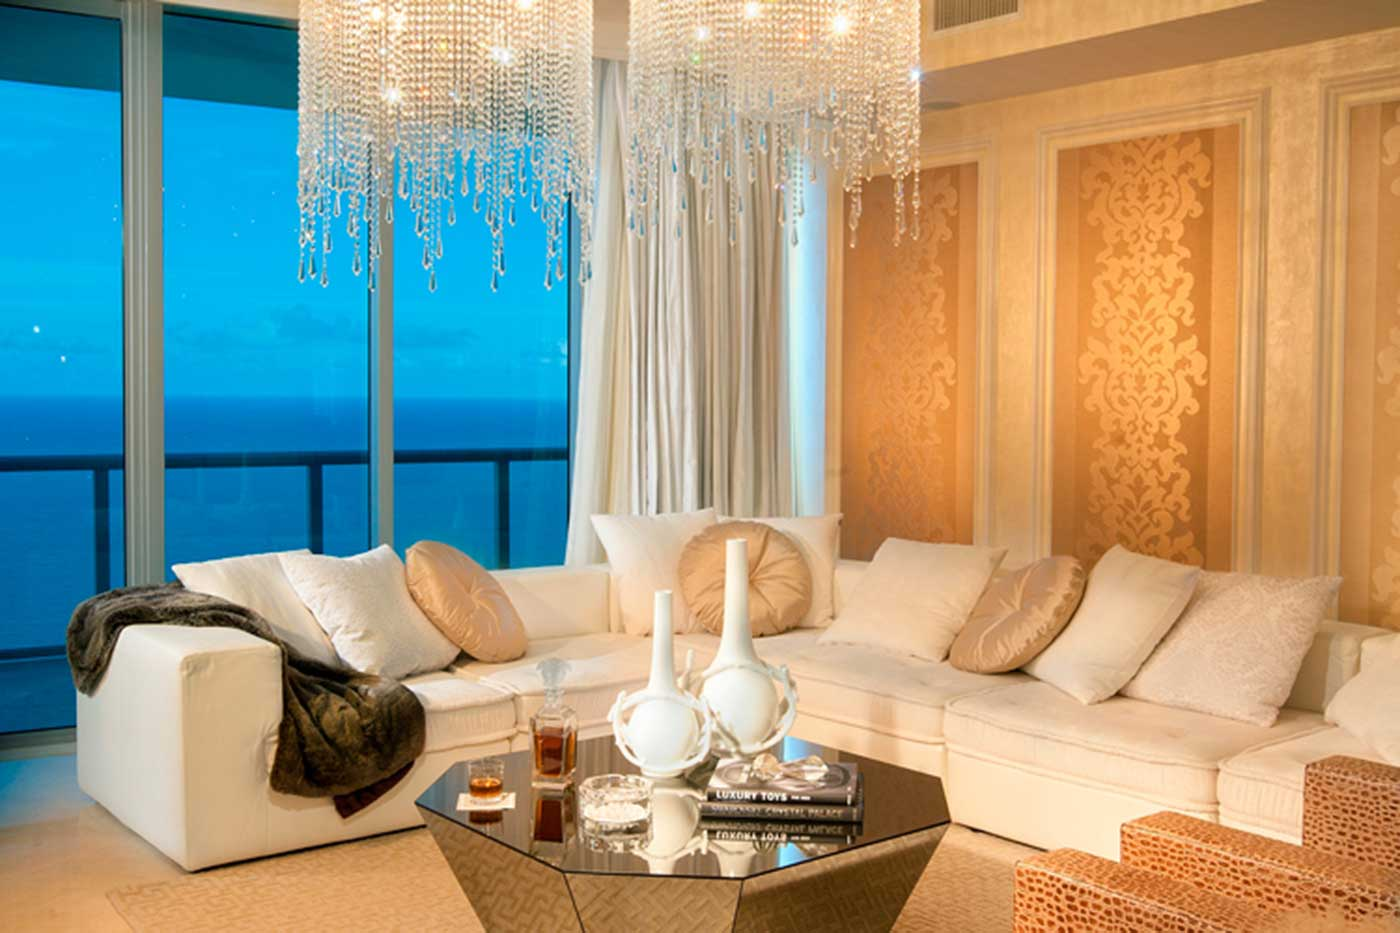 Penthouse Design - Interior Design Project in Sunny Isles, Florida